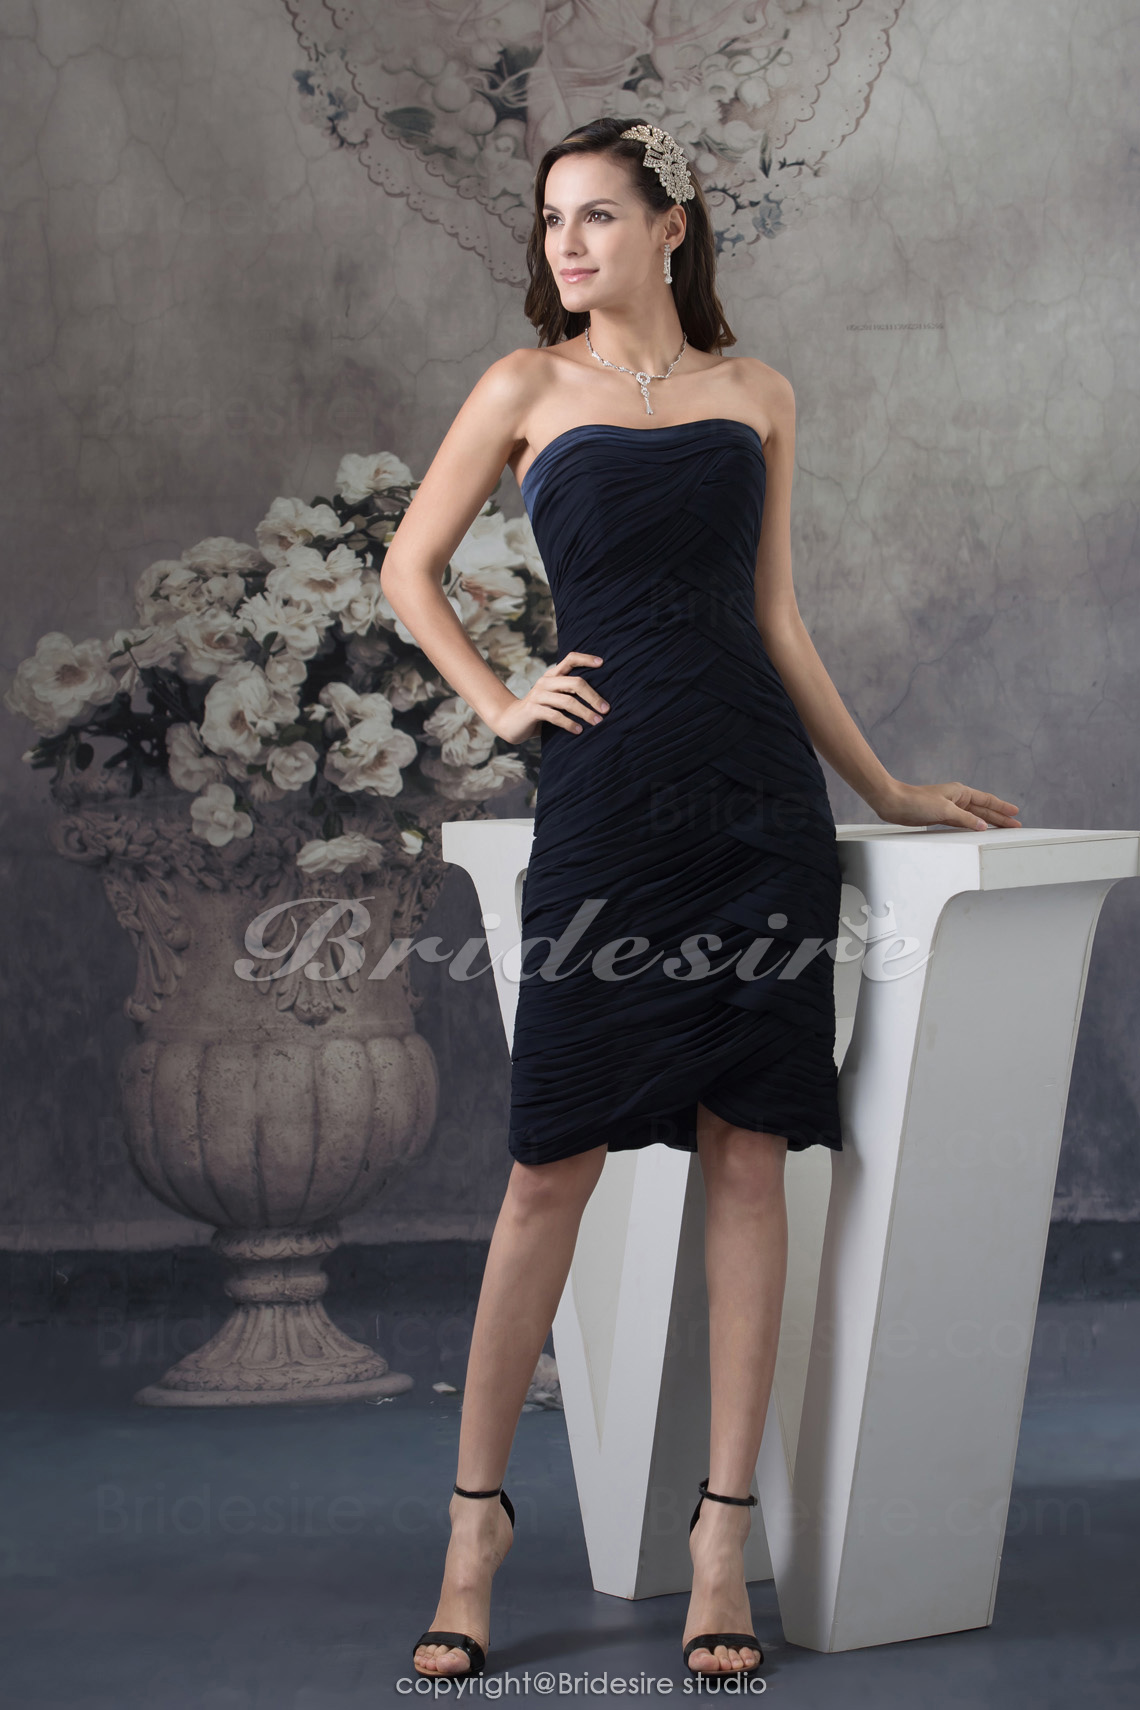 Sheath/Column Strapless Knee-length Sleeveless Chiffon Bridesmaid Dress